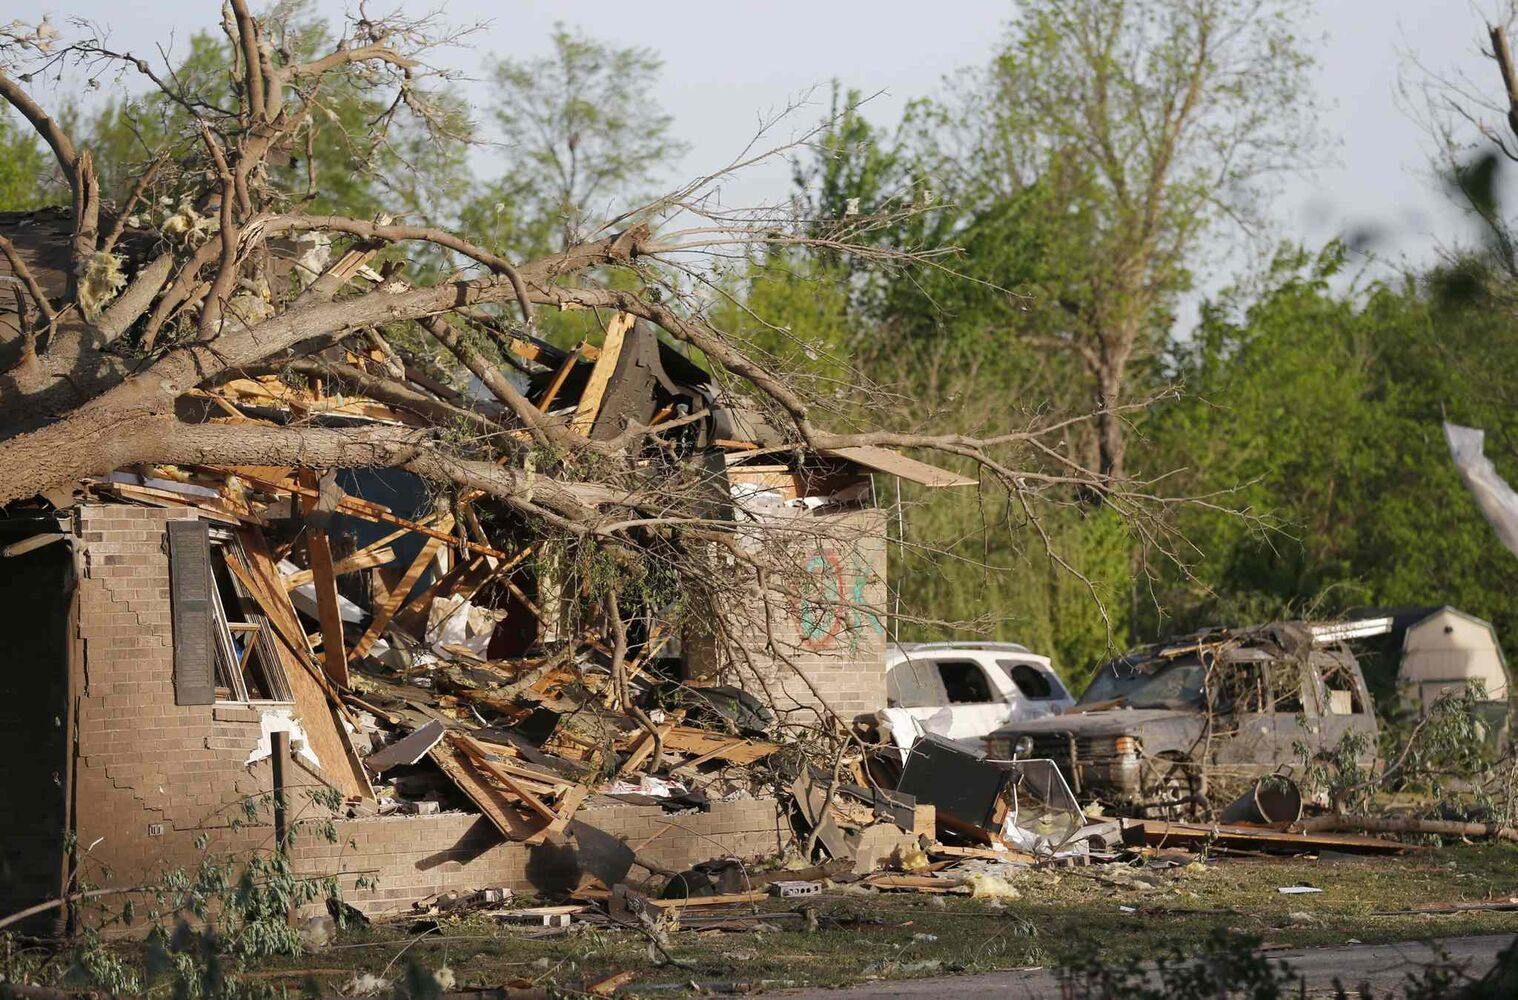 A tornado-damaged home awaits clean up and repairs after a Sunday tornado in Baxter Springs, Kan., Monday, April 28, 2014.